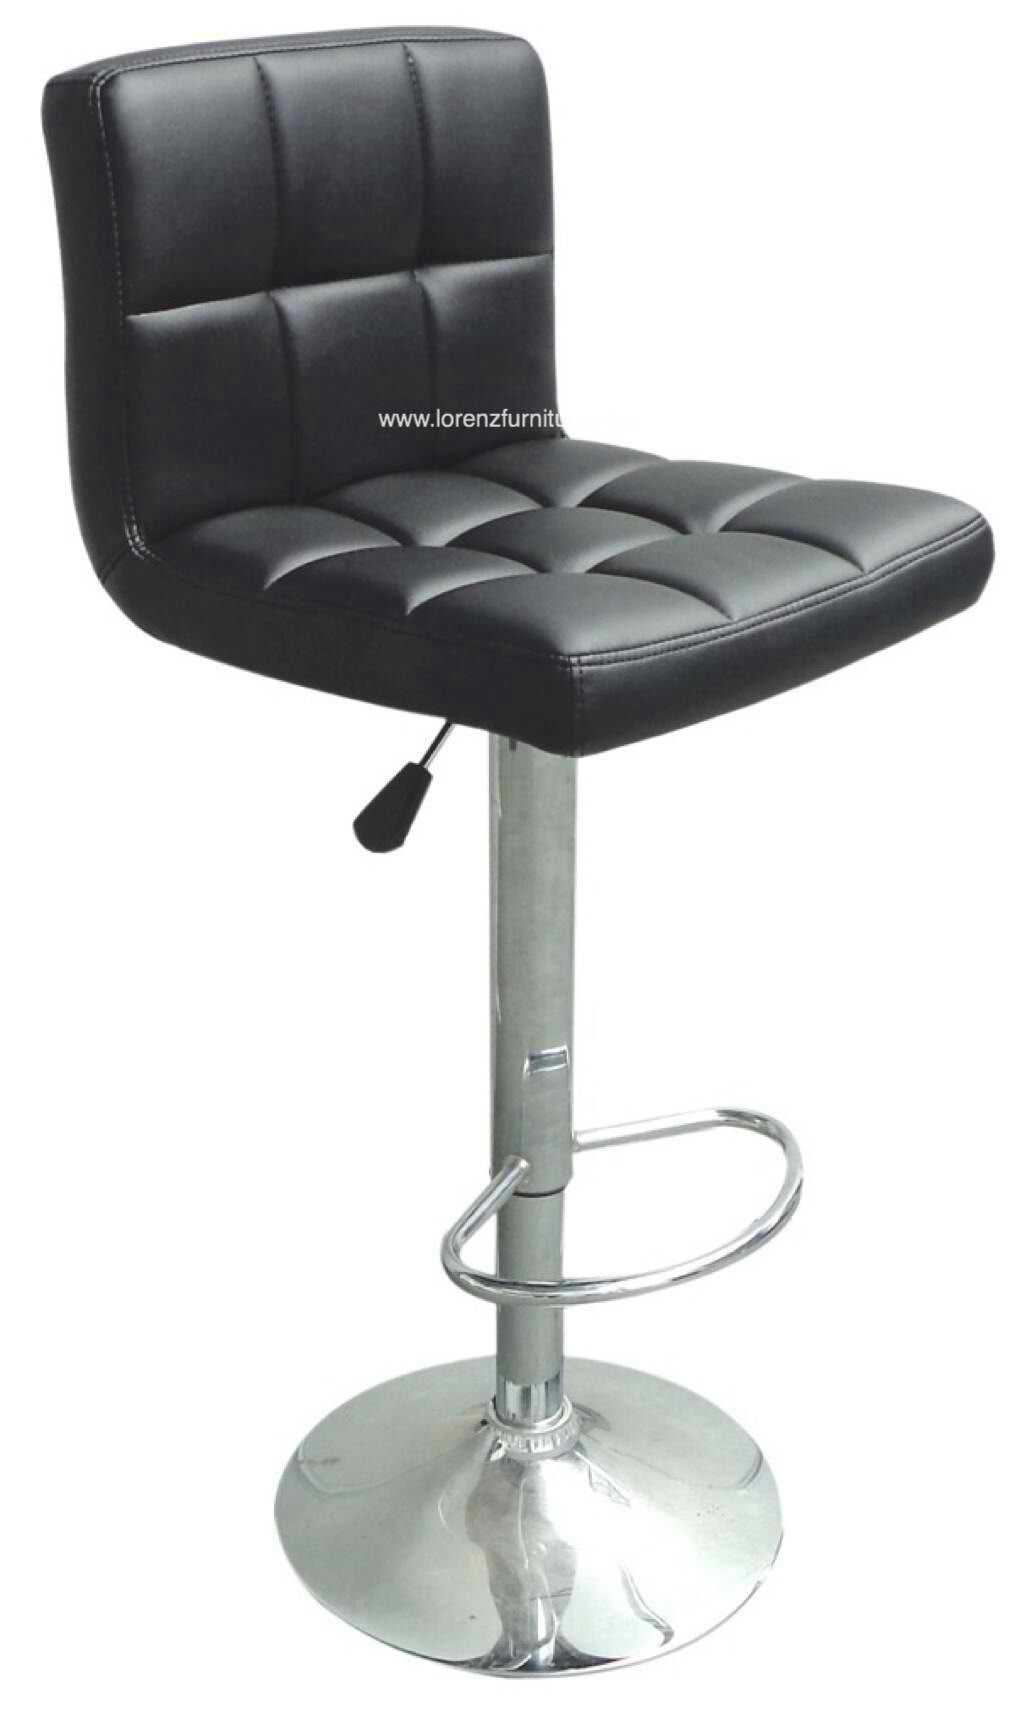 2 Of This From Lorenz Furniture